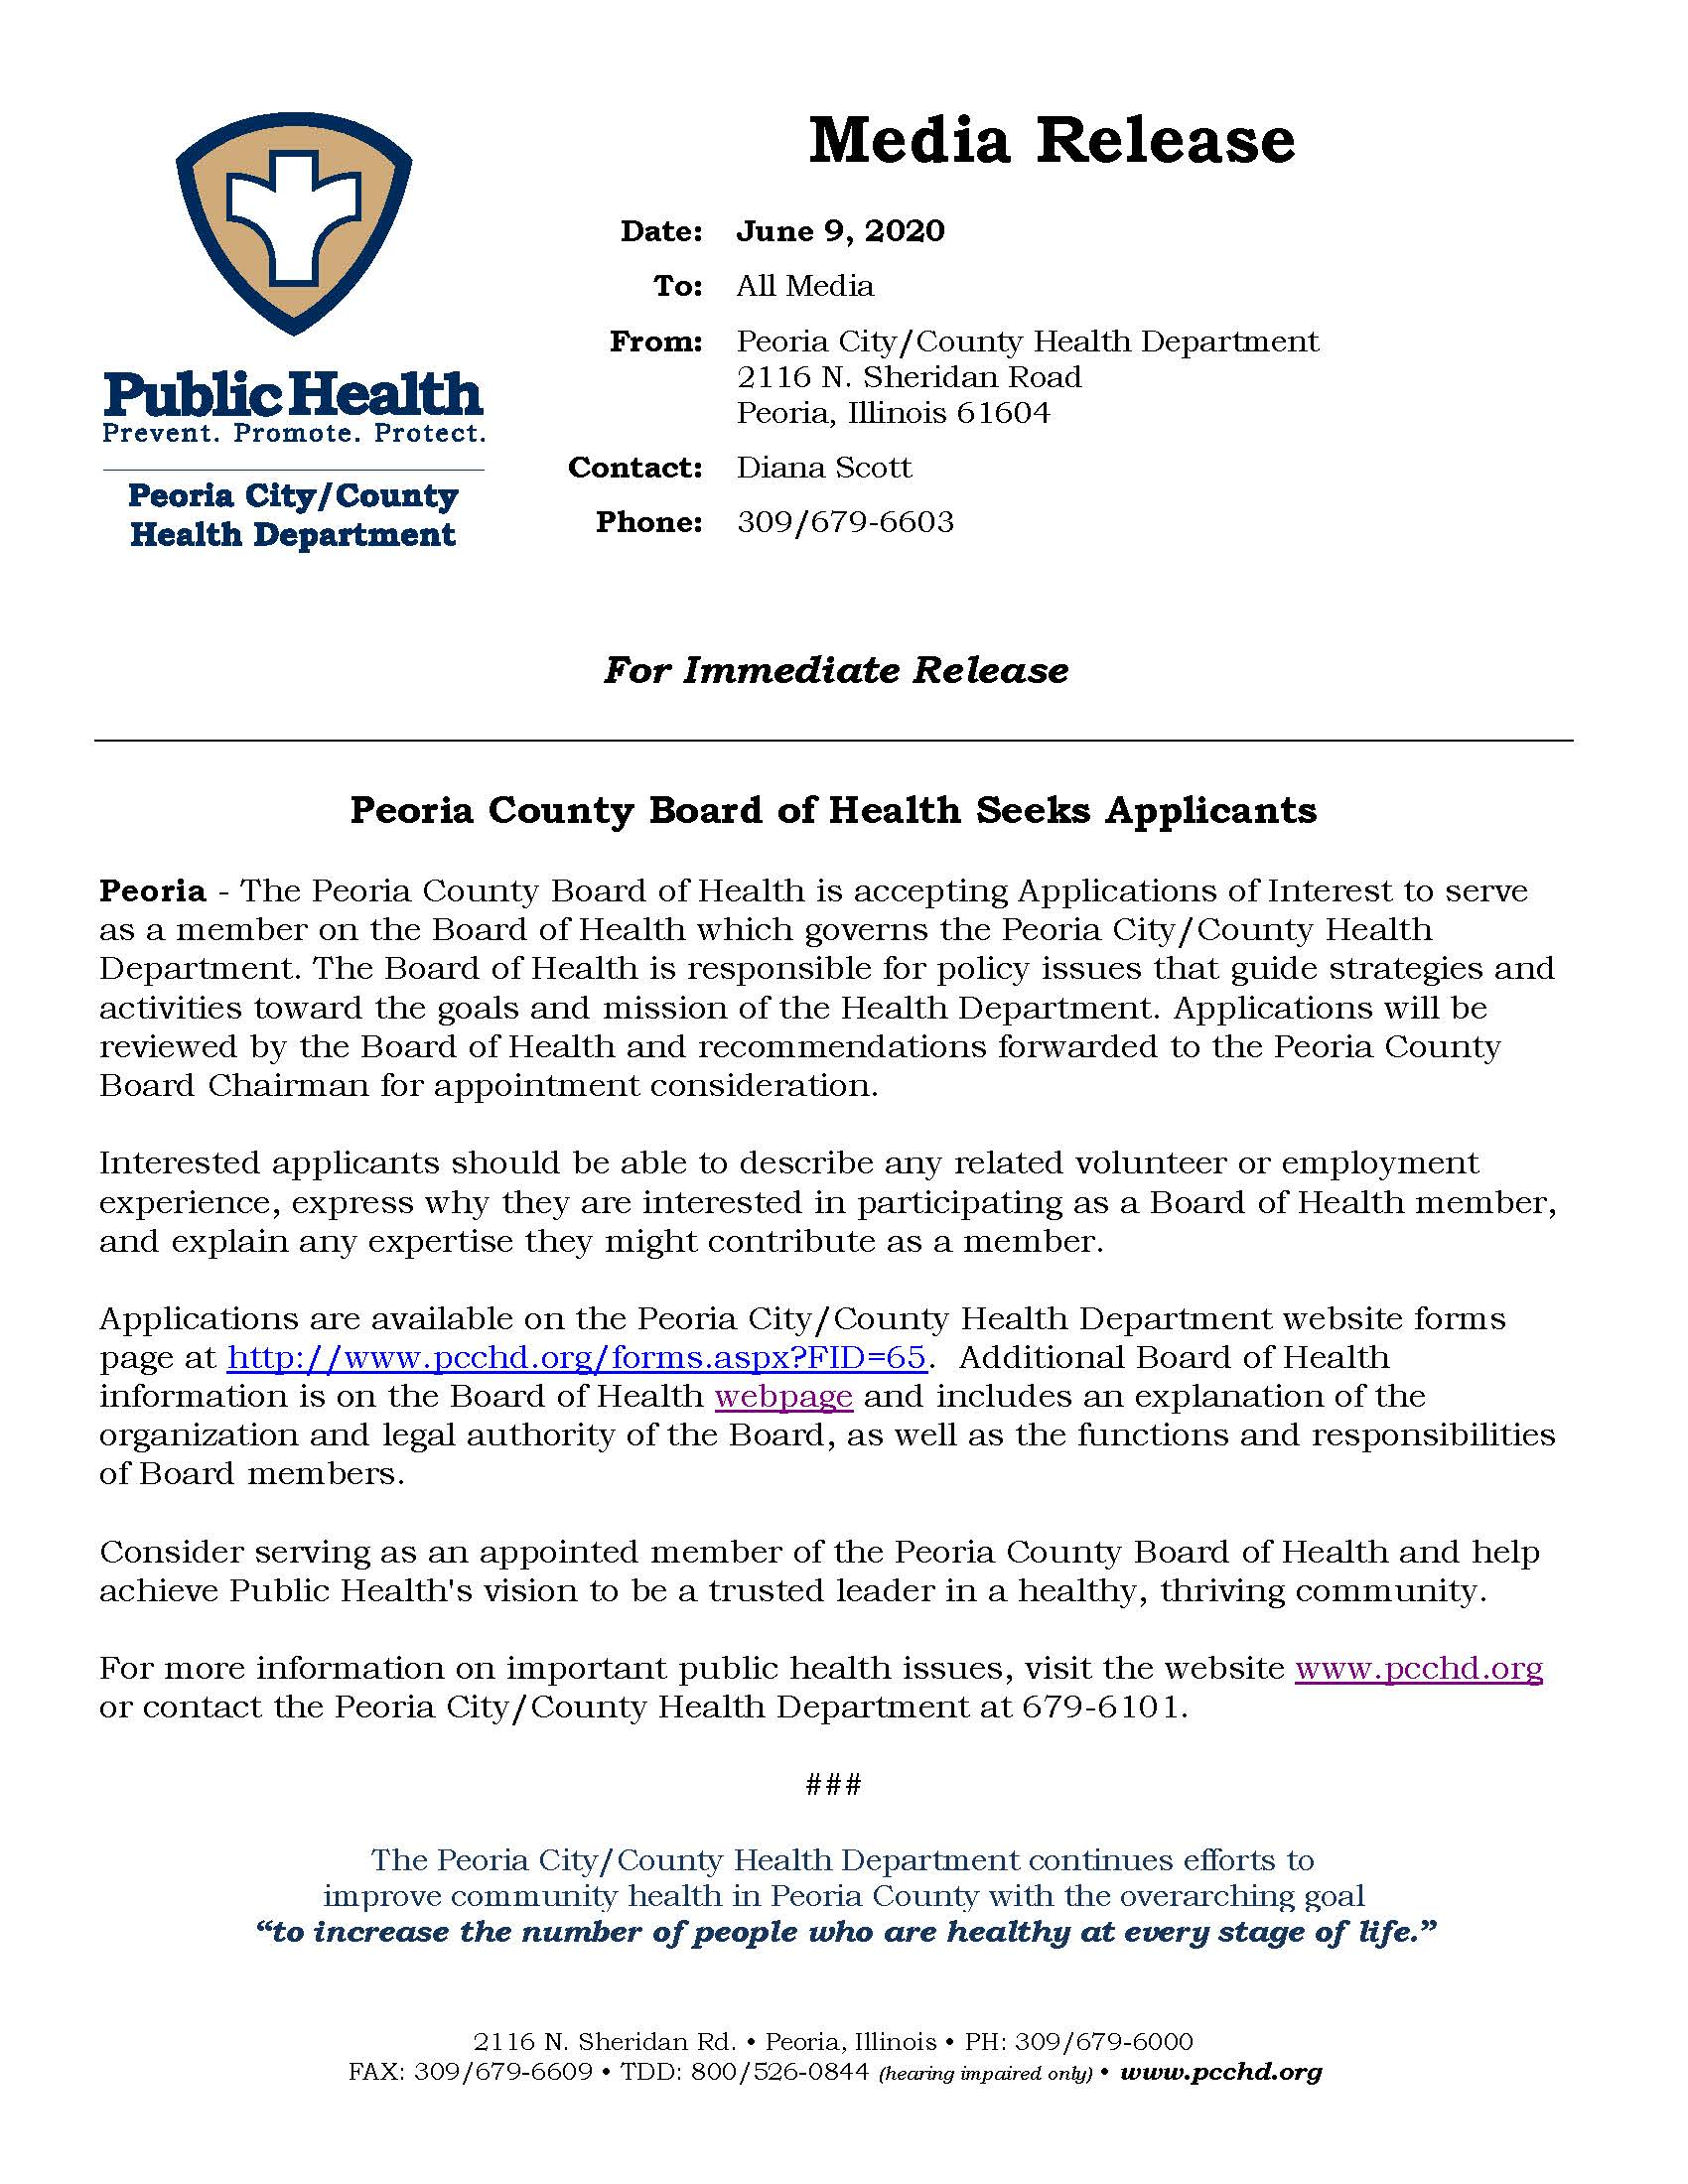 Board of Health Seeks Applicants press release